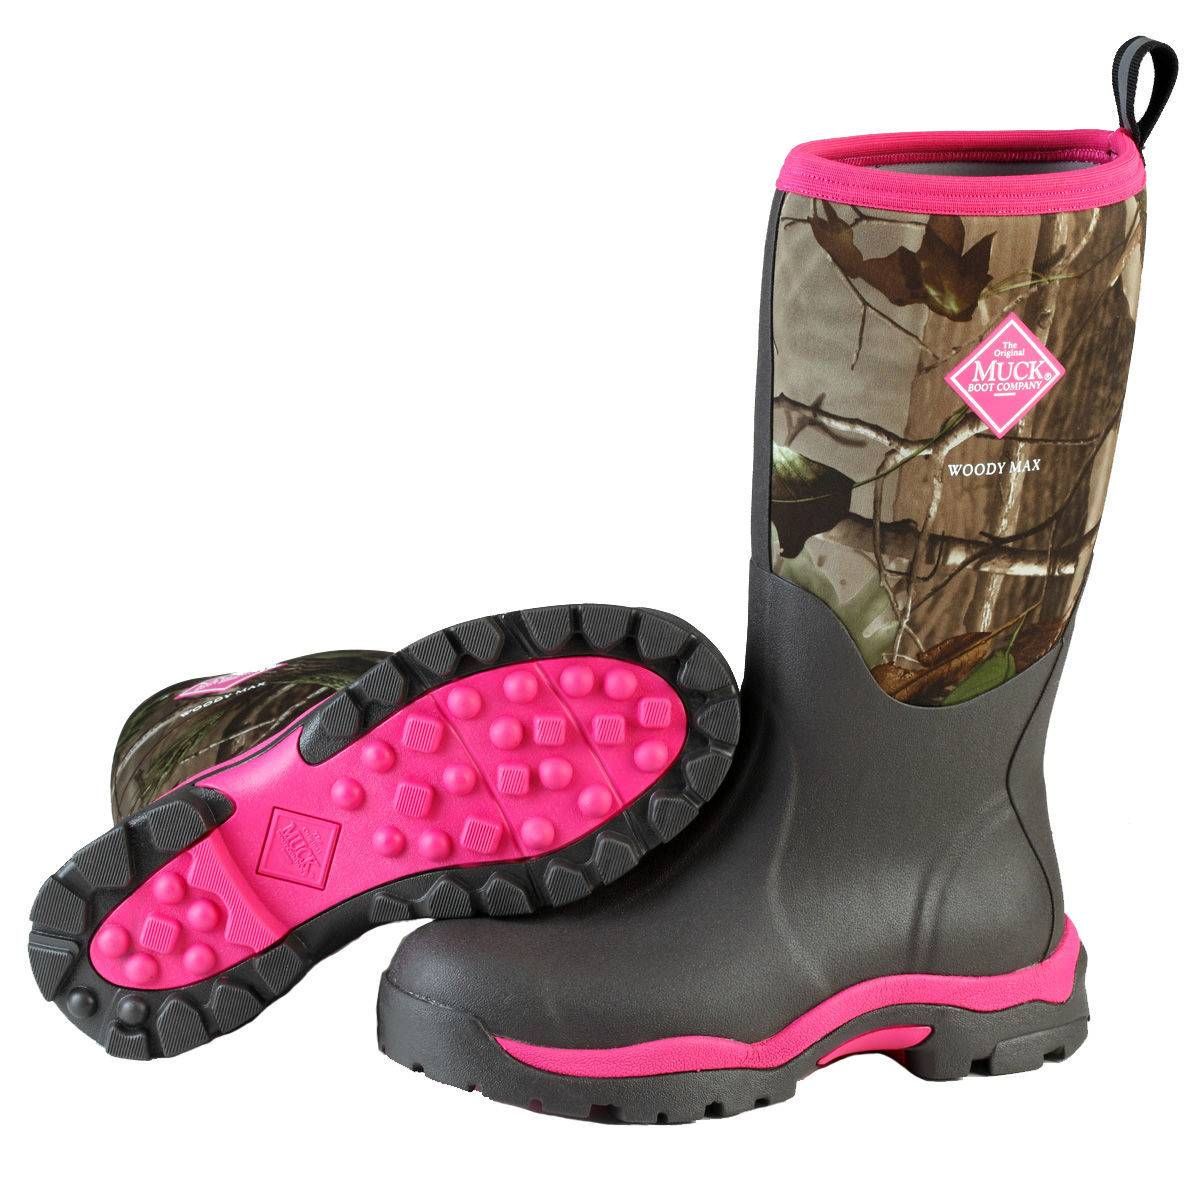 Muck Boots Ladies Woody